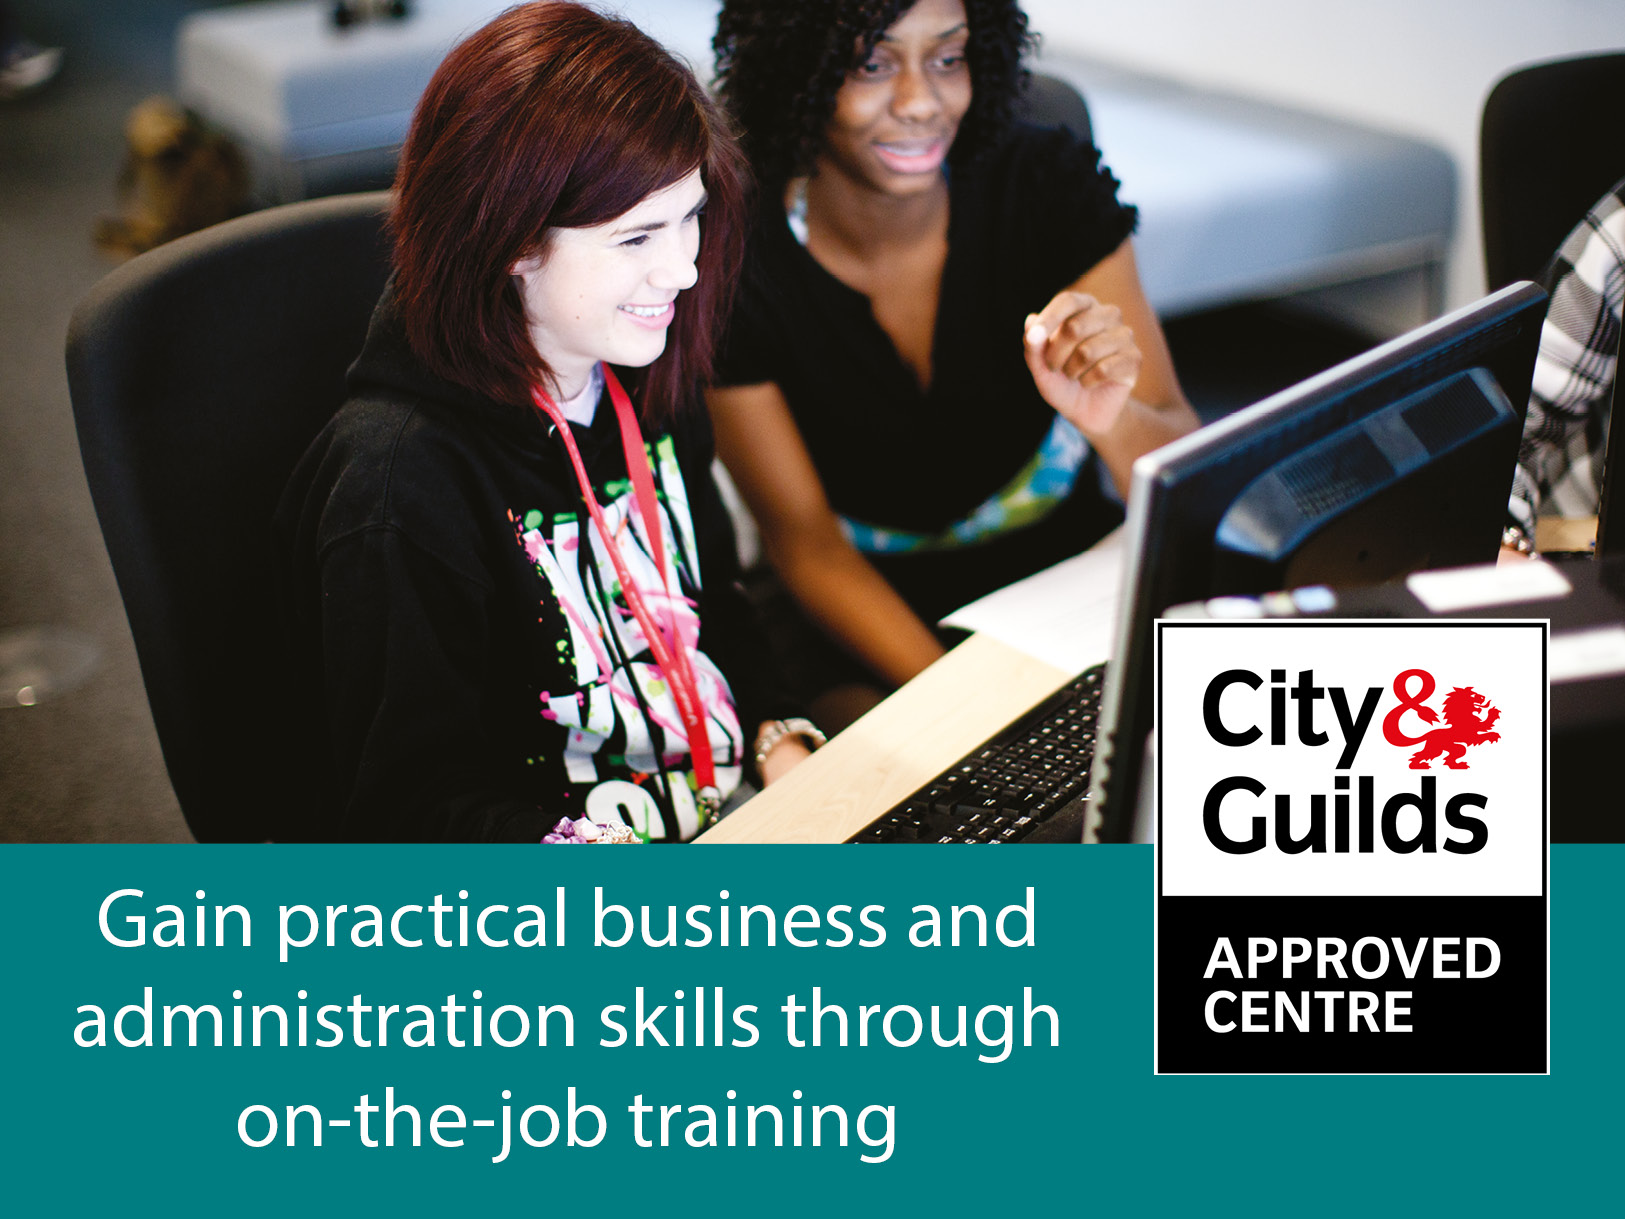 Gain practical business and administration skills through on-the-job training